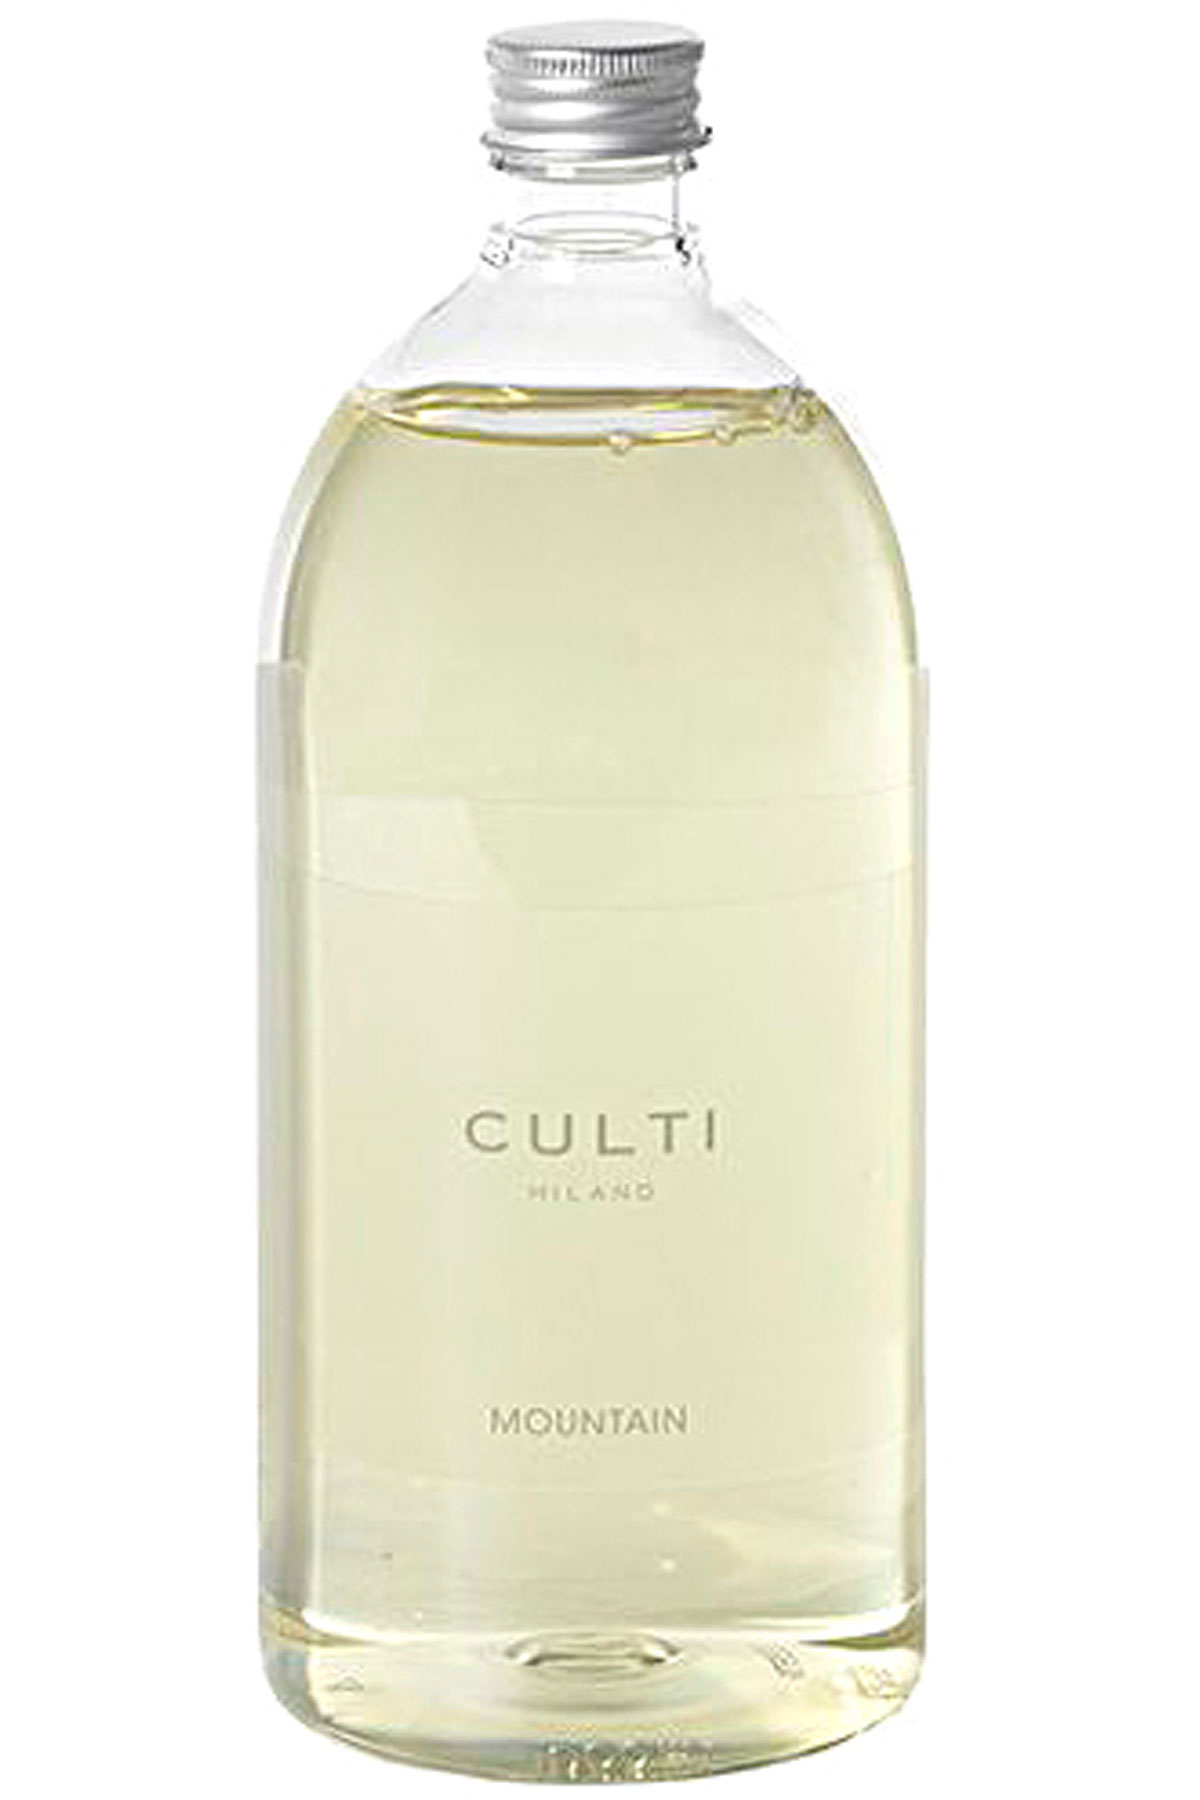 Culti Milano Home Scents for Men On Sale, Refill - Mountain - 1000 Ml, 2019, 1000 ml